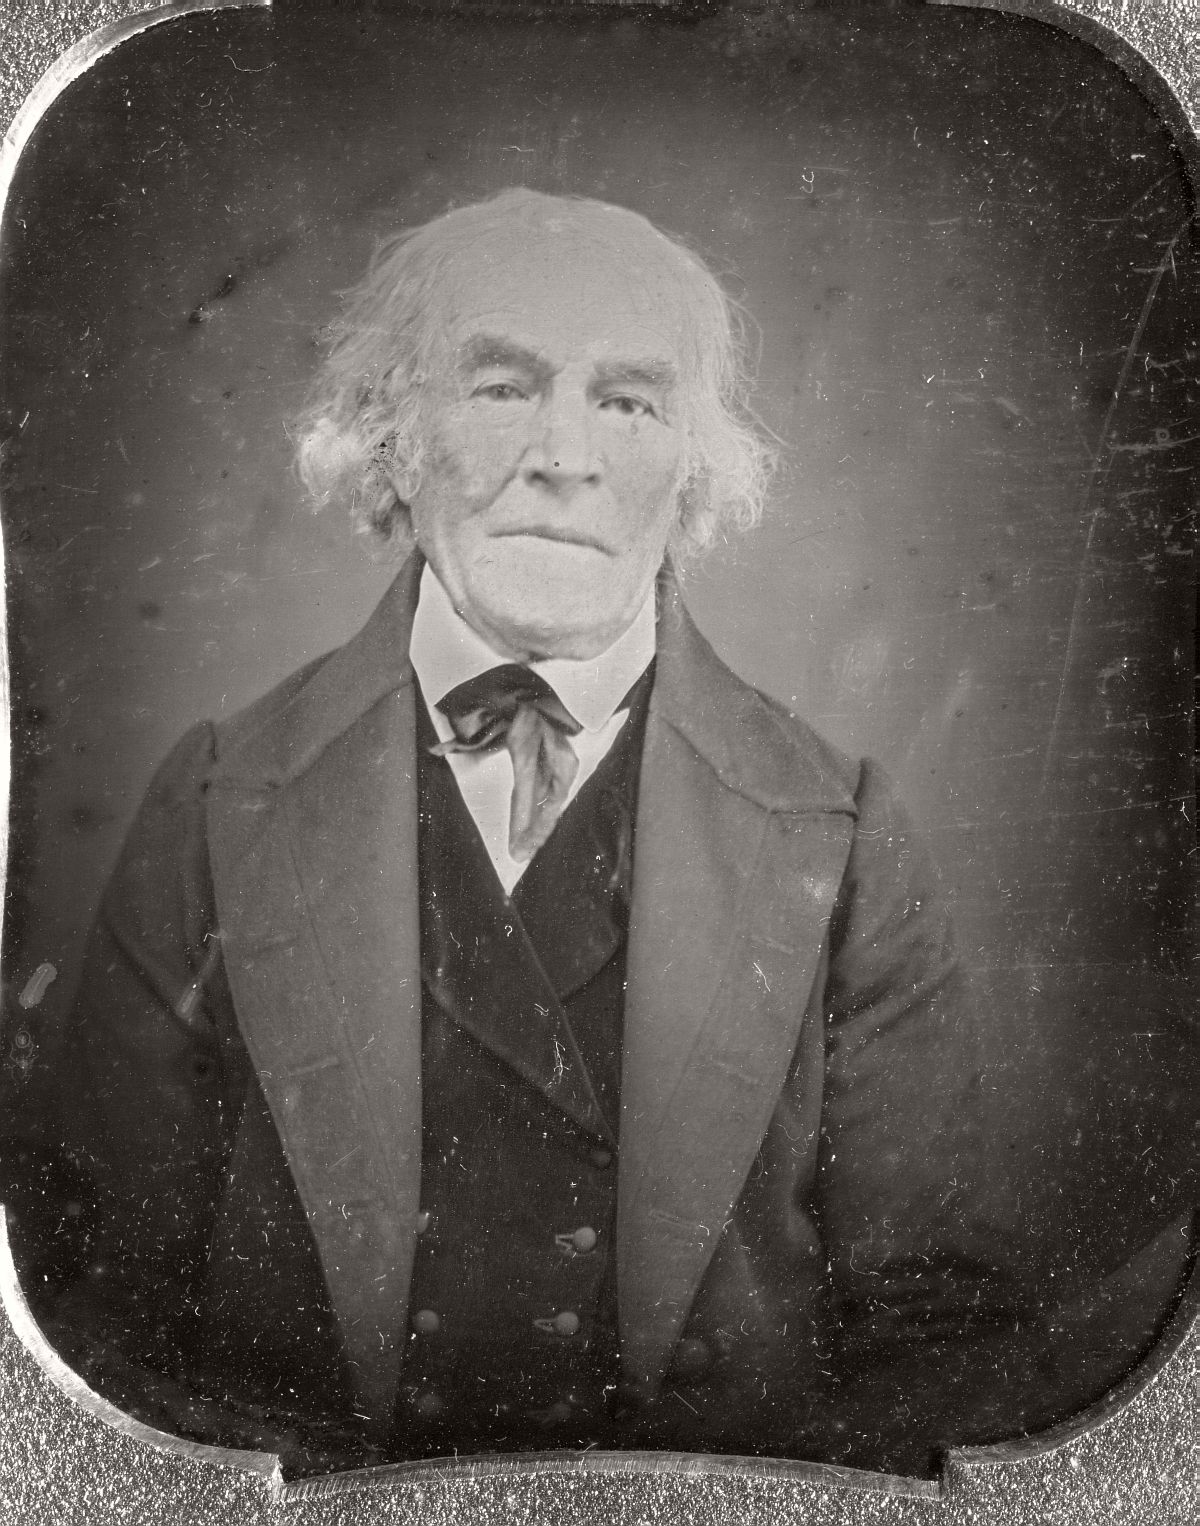 daguerreotype-portrait-people-born-in-the-late-18th-xviii-century-1700s-vintage-21